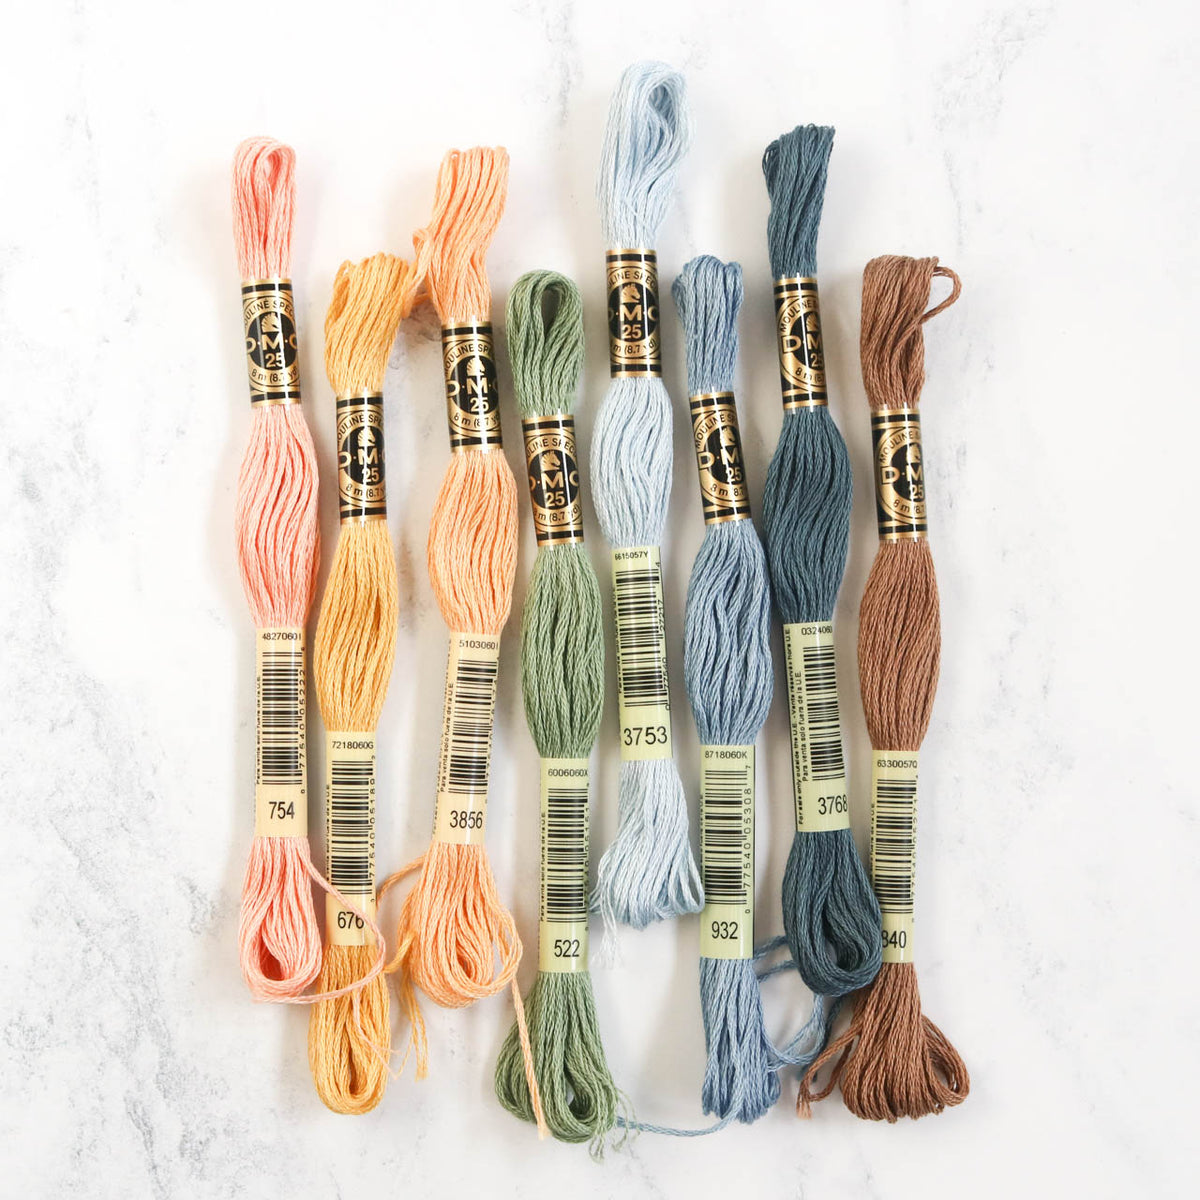 DMC Embroidery Floss Color Palette - Hygge